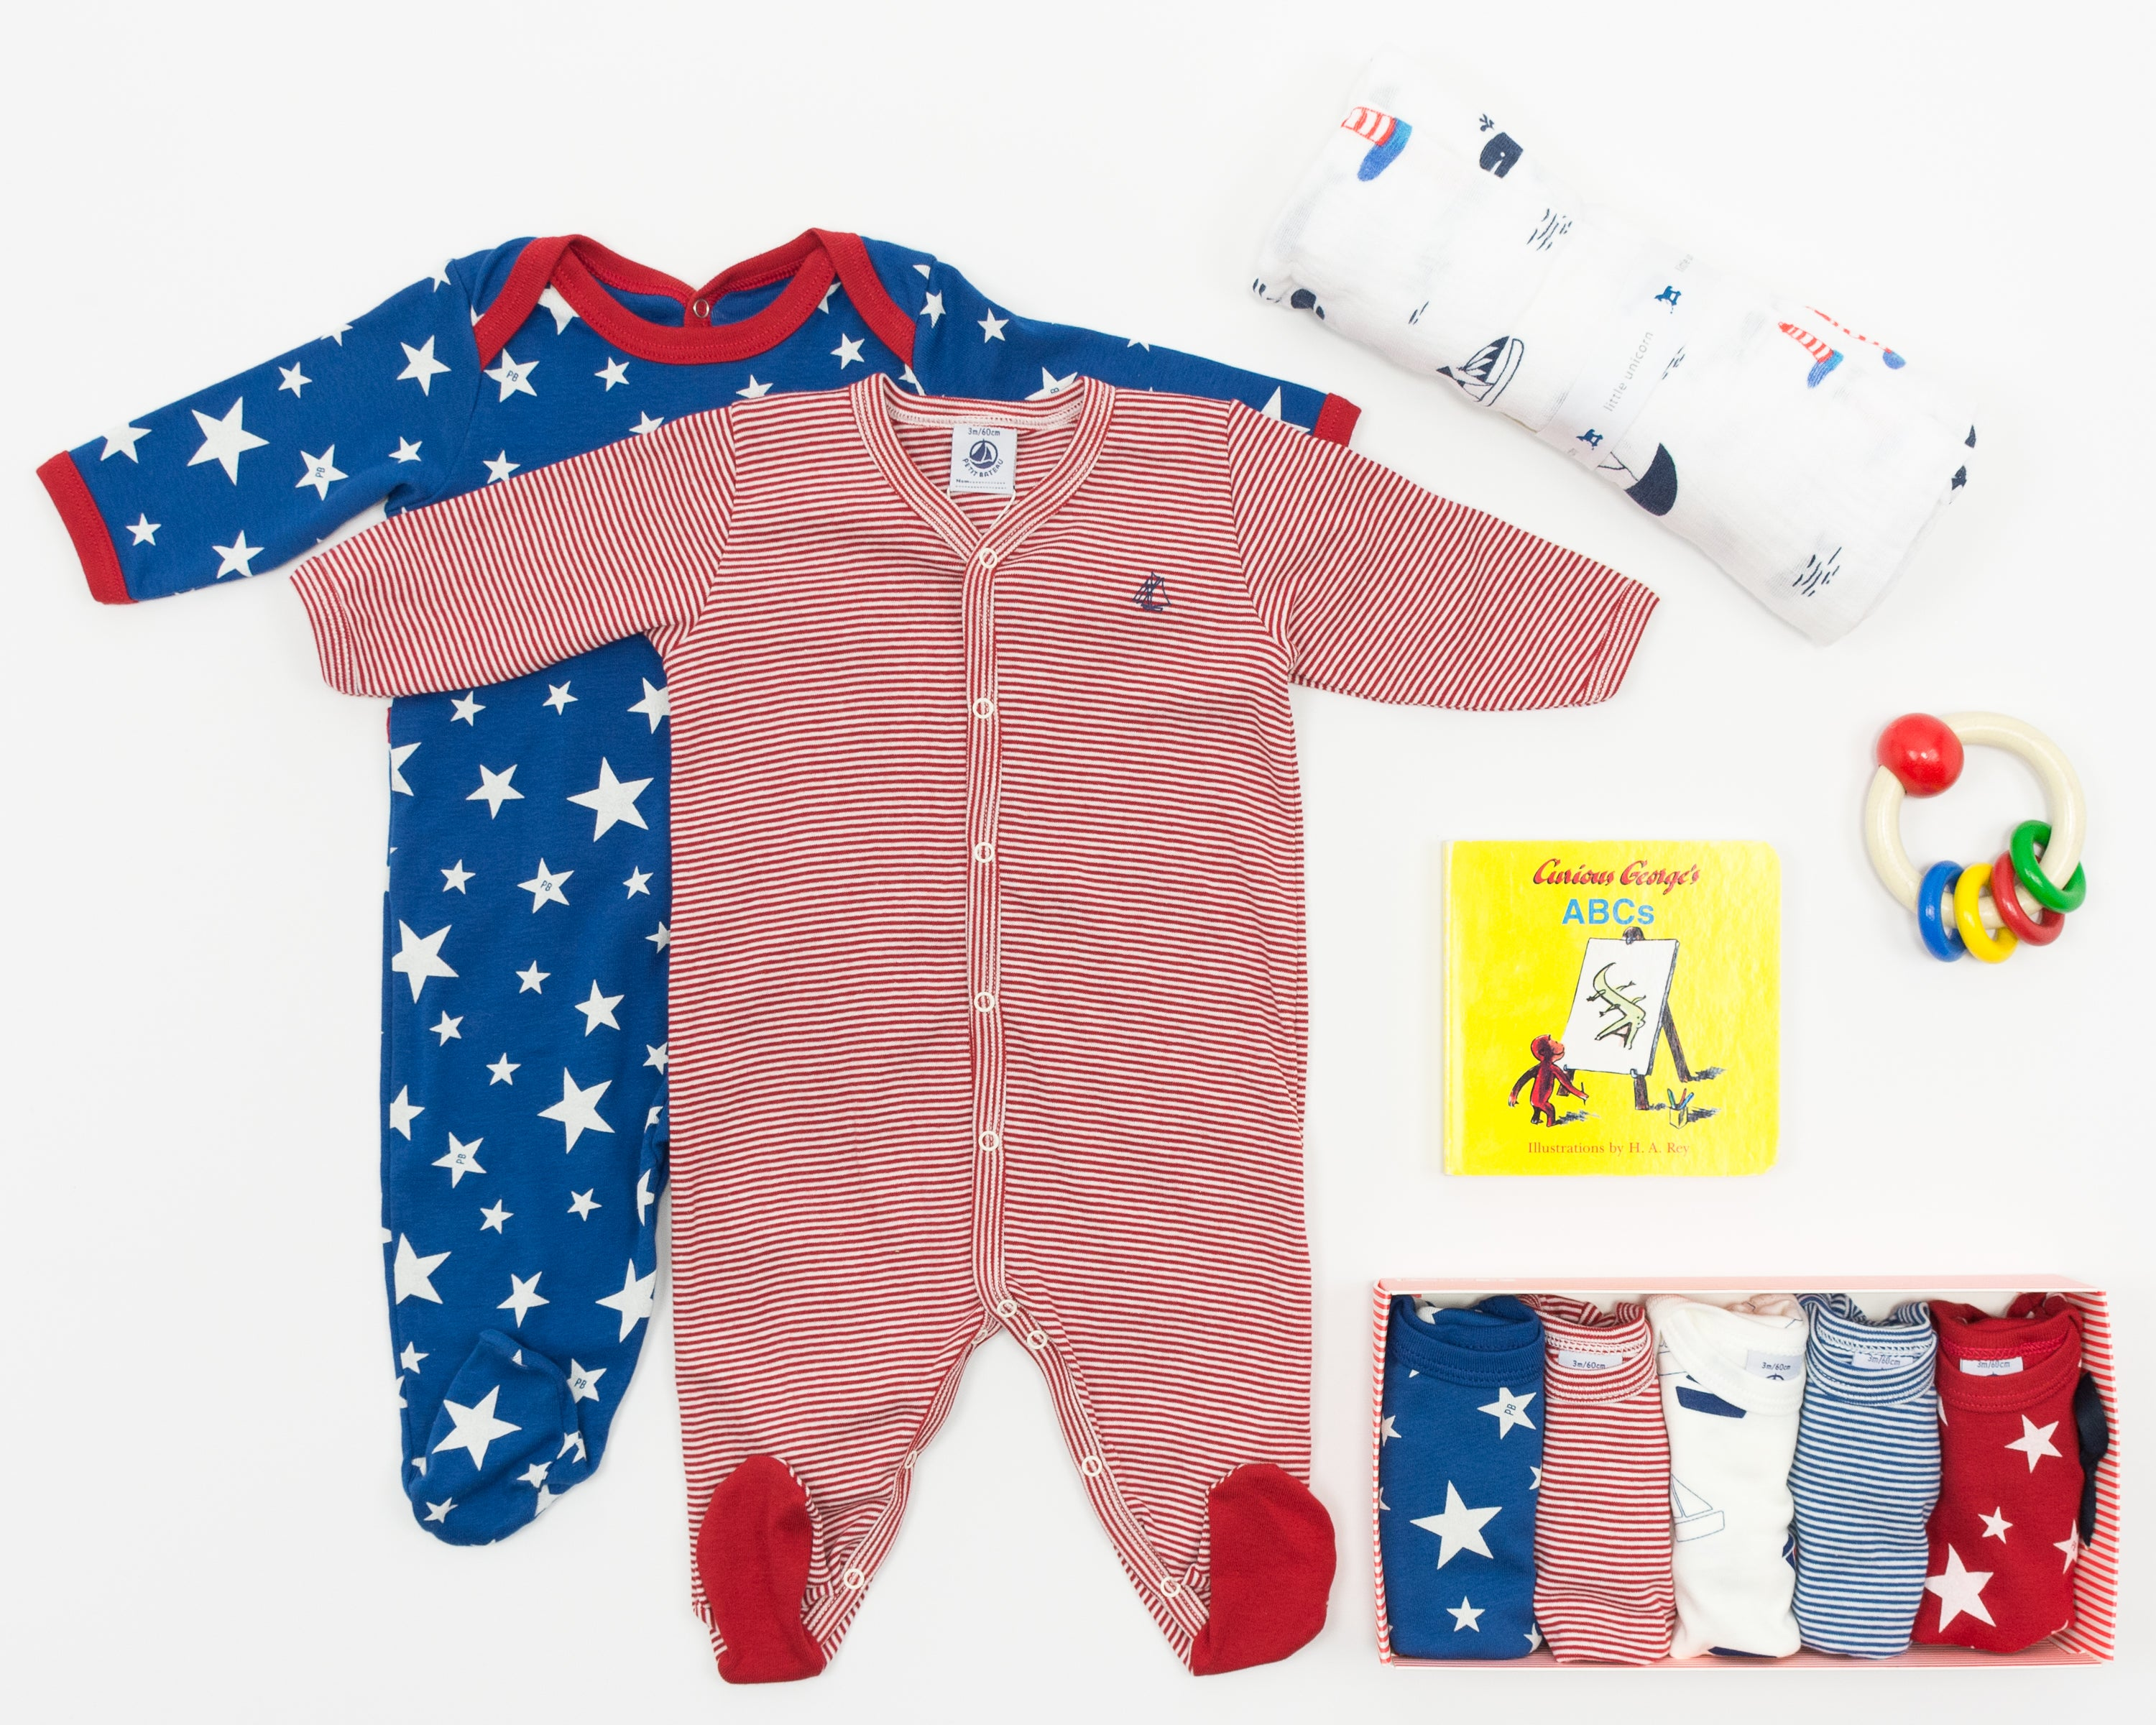 Petit Bateau Best Baby Gifts at Bonjour Baby Baskets